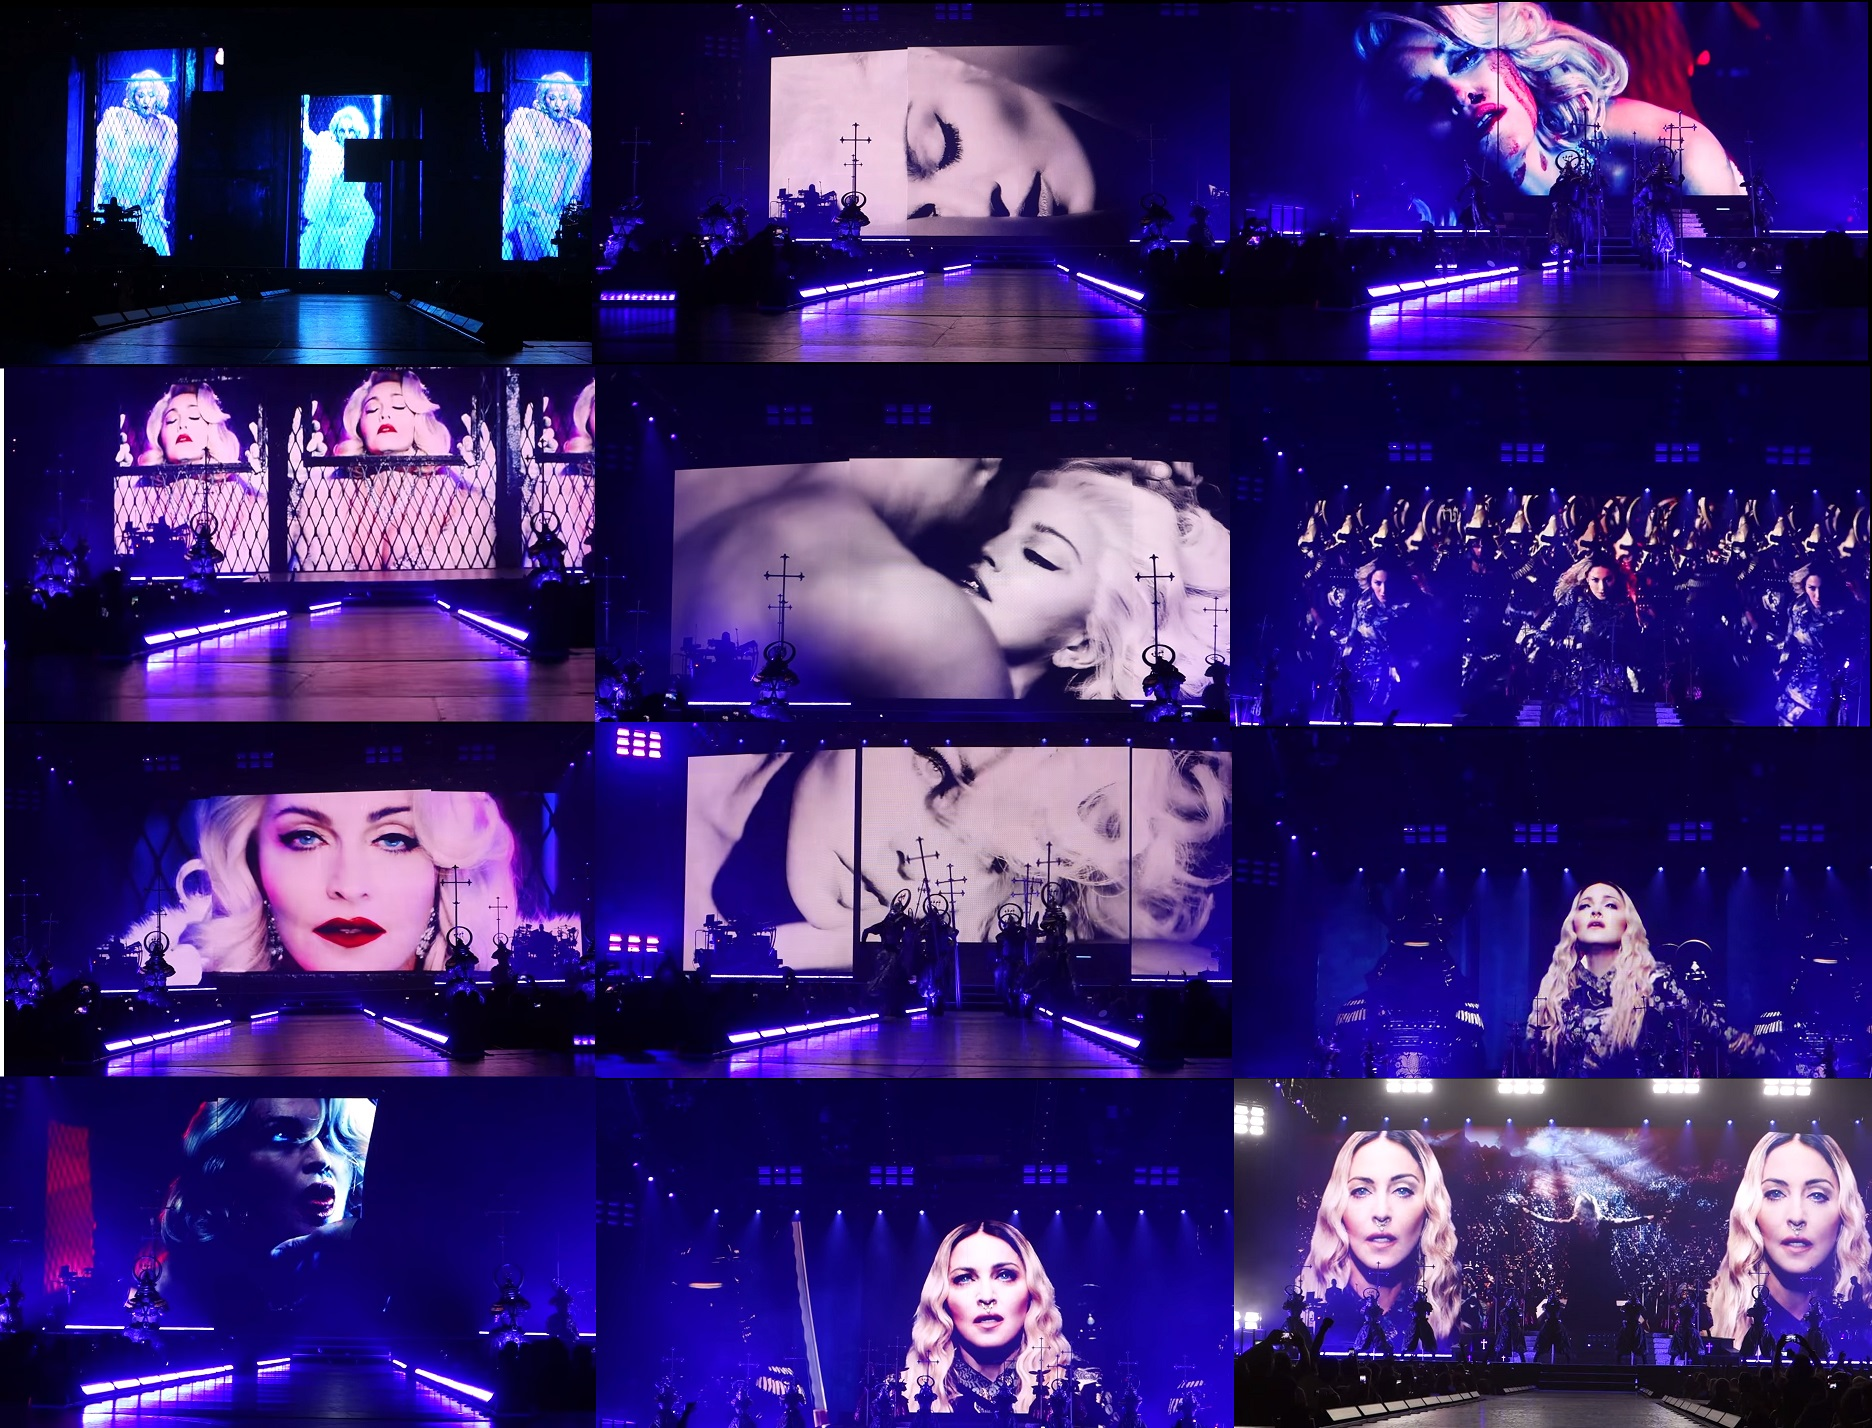 FULL ICONIC OFFICIAL VIDEO BACKDROP